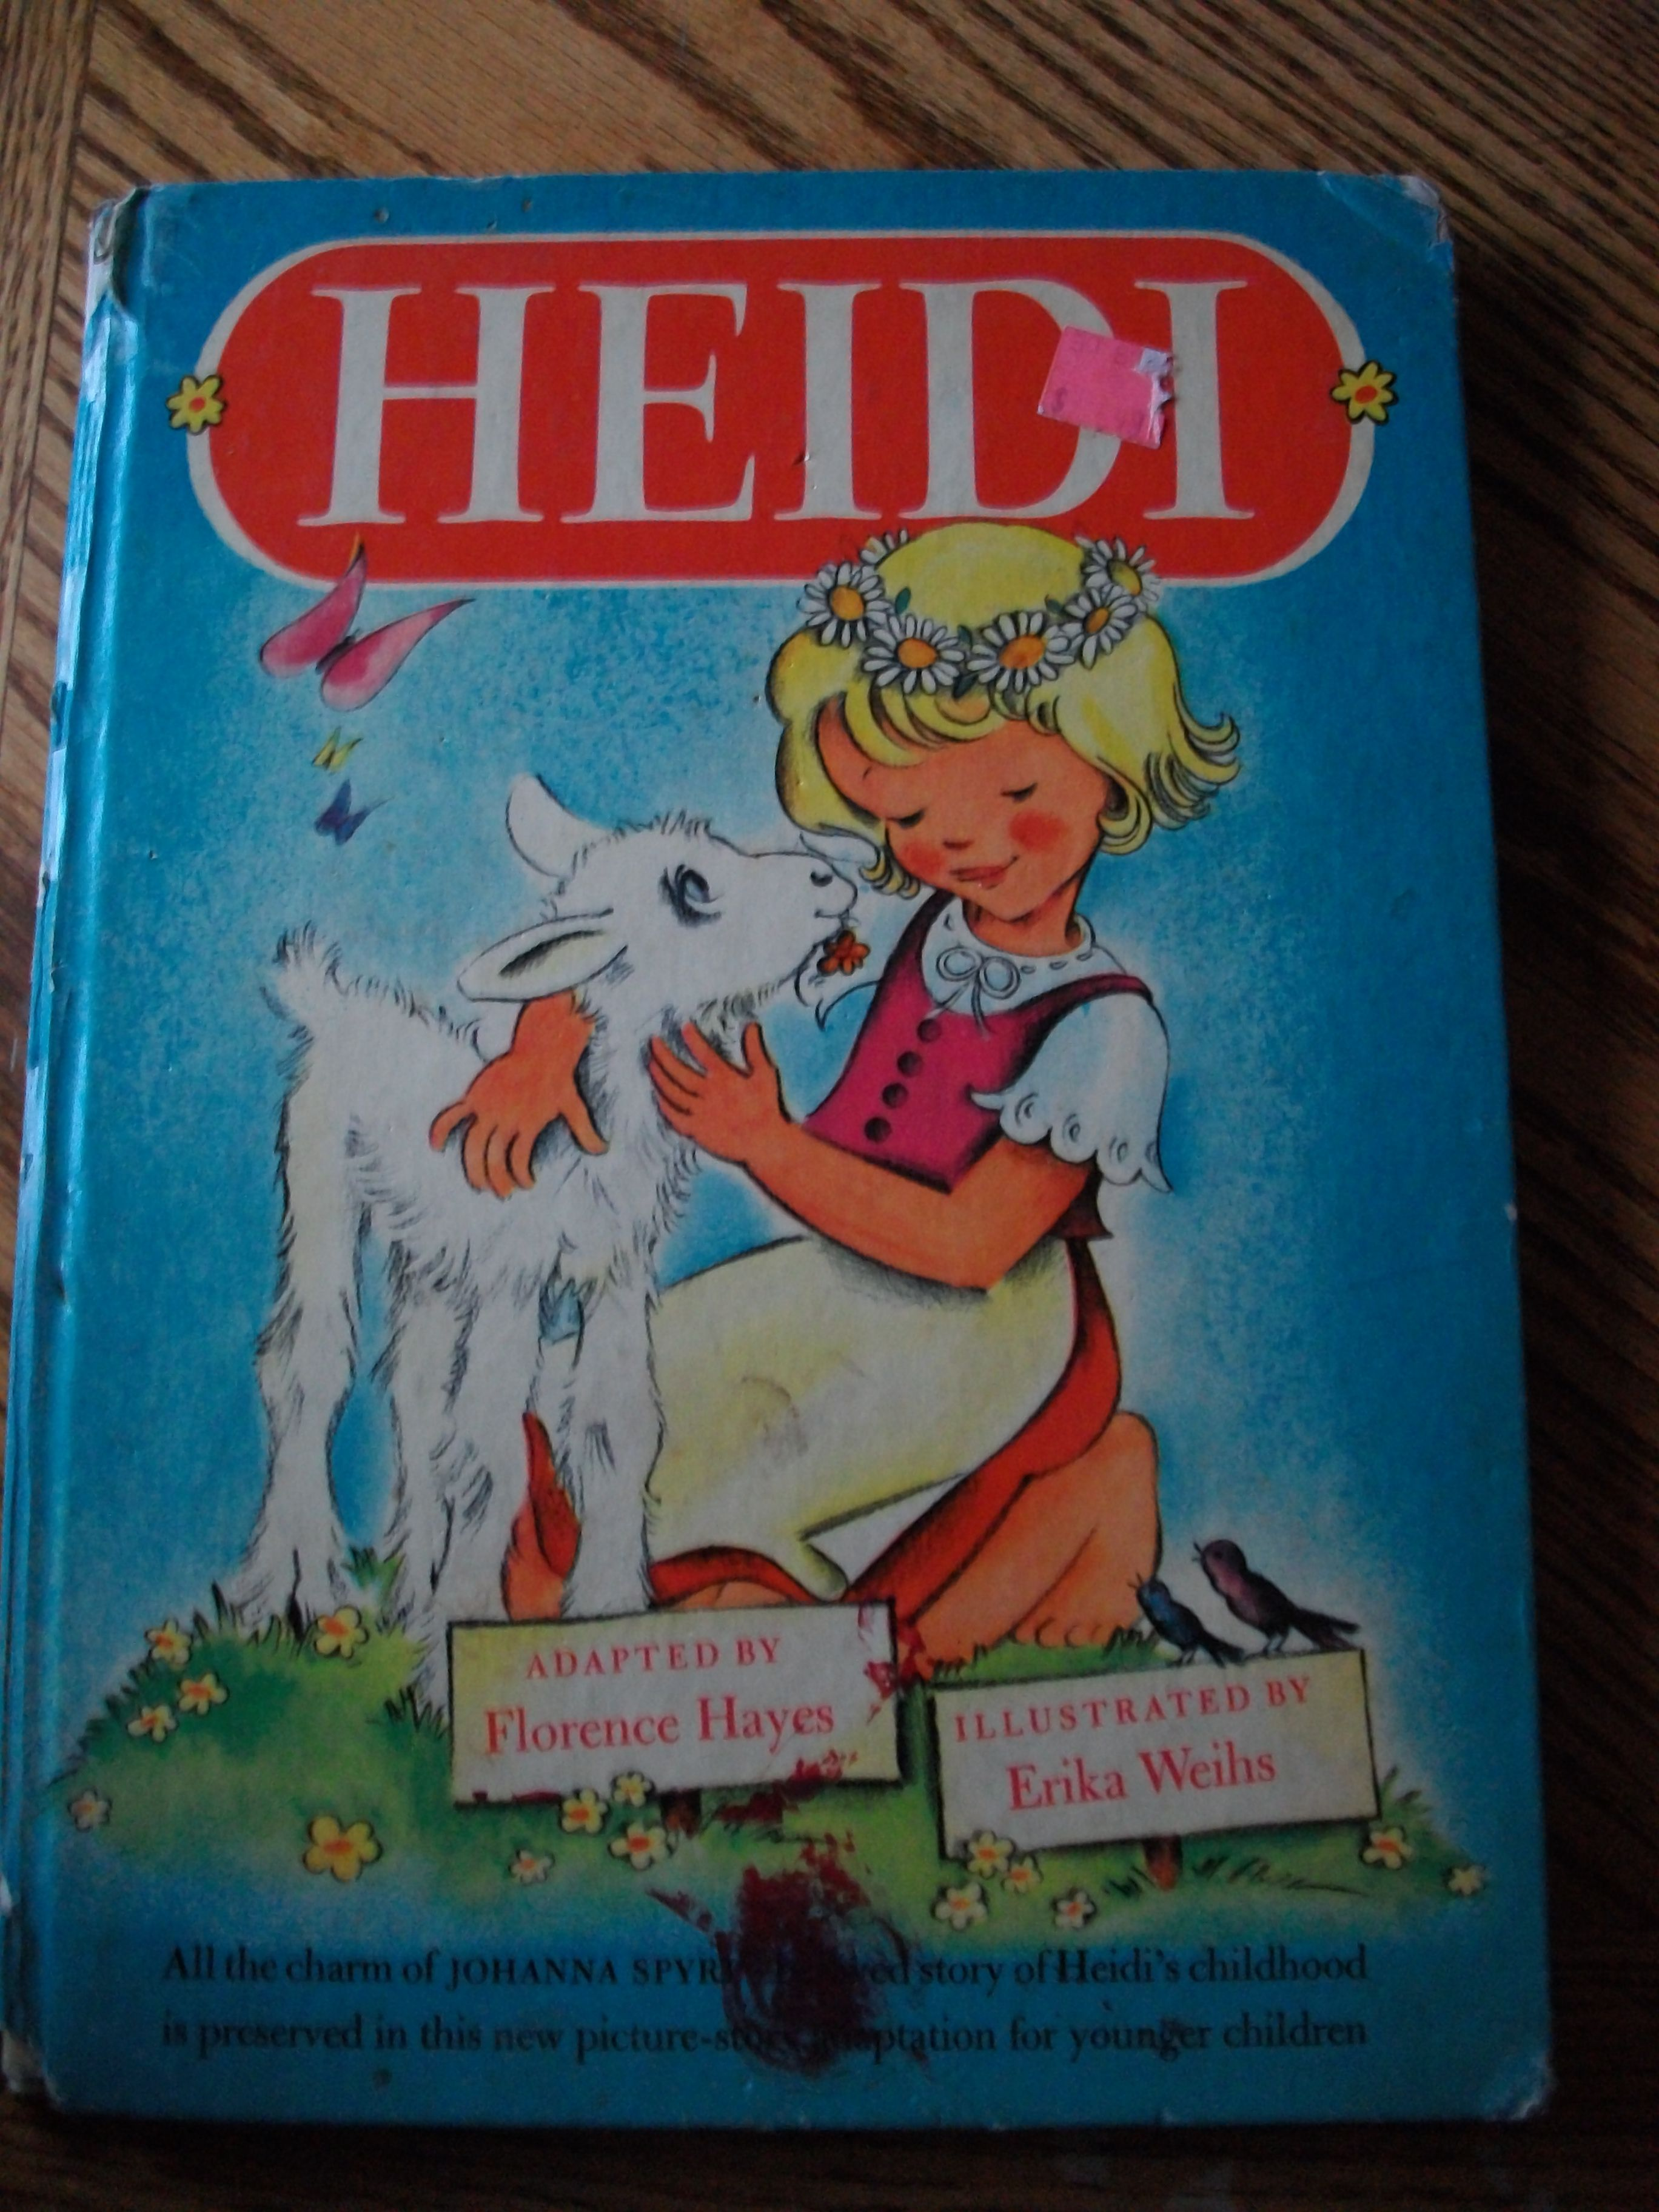 Heidi Book By Johanna Spyri Adapted By Florence Hayes Illustrated By Erika  Weihs 1946